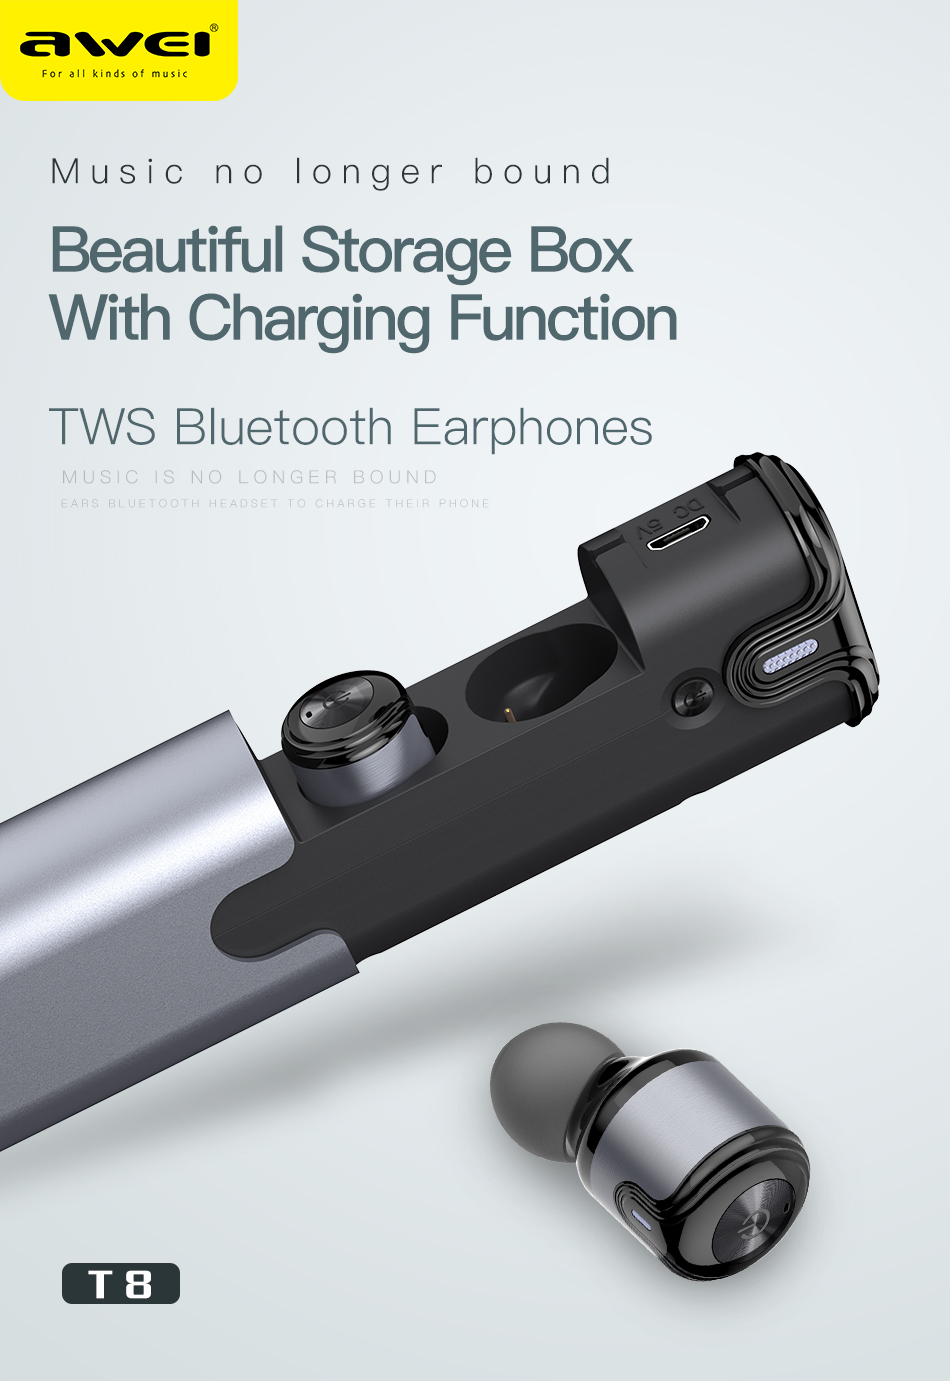 [True Wireless] Awei T8 Double bluetooth Earphone 3D Stereo Headphones with Charging Box Power Bank